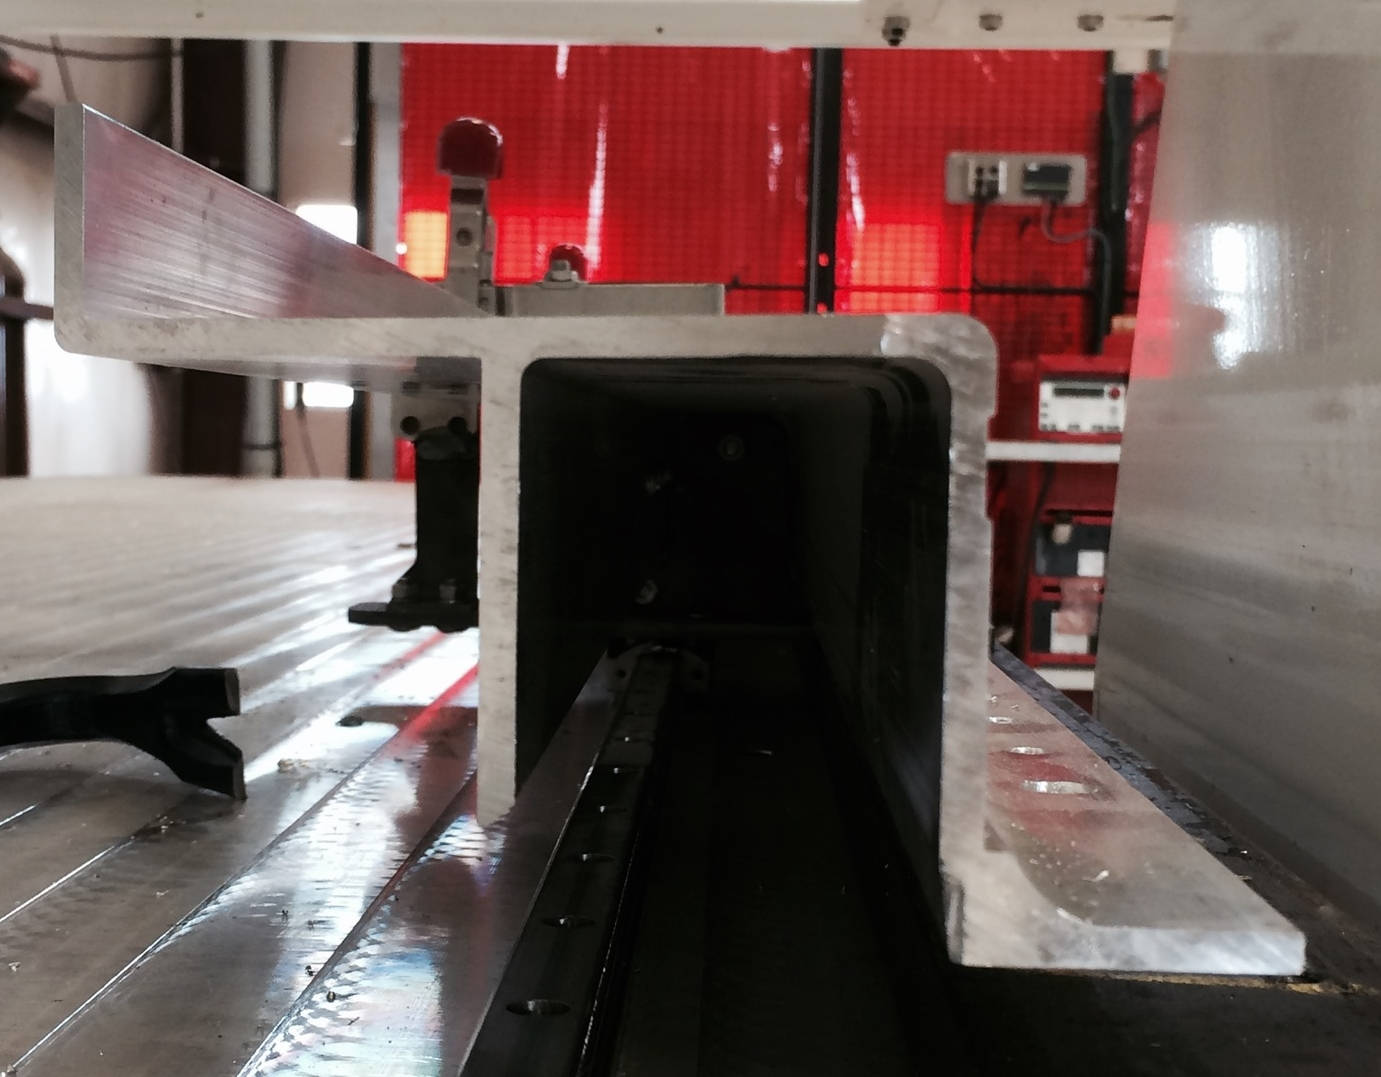 Here is an end view of a typical aluminum extrusion. Both drilling and cutting operations need to be performed on the top and sides of the part which takes several set-ups on traditional milling machines but only one set-up on our new machine.